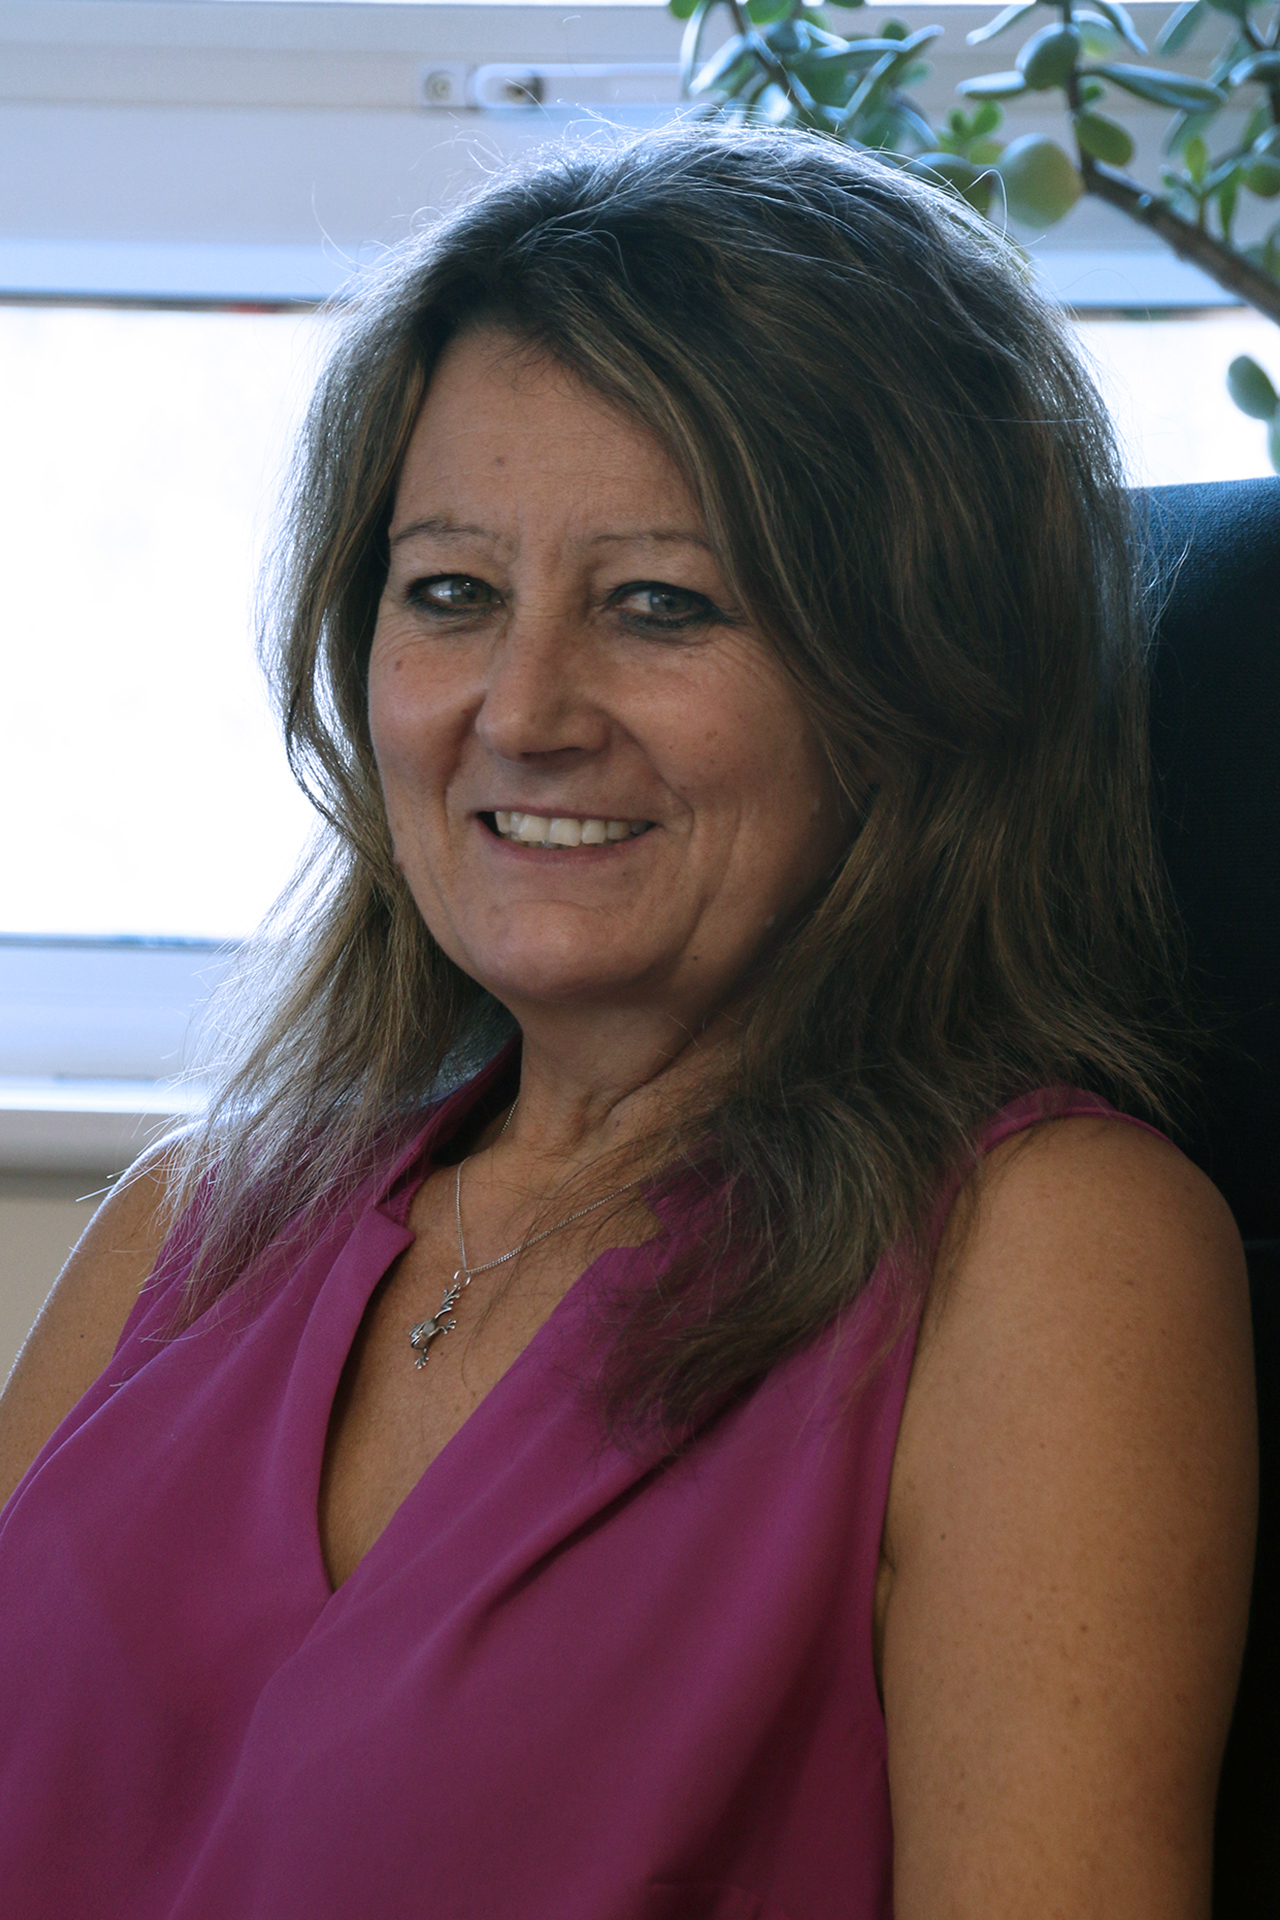 Lynda Moore sitting in office chair in front of a window, with a plant behind her. She wears a pink sleeveless shirt and is smiling